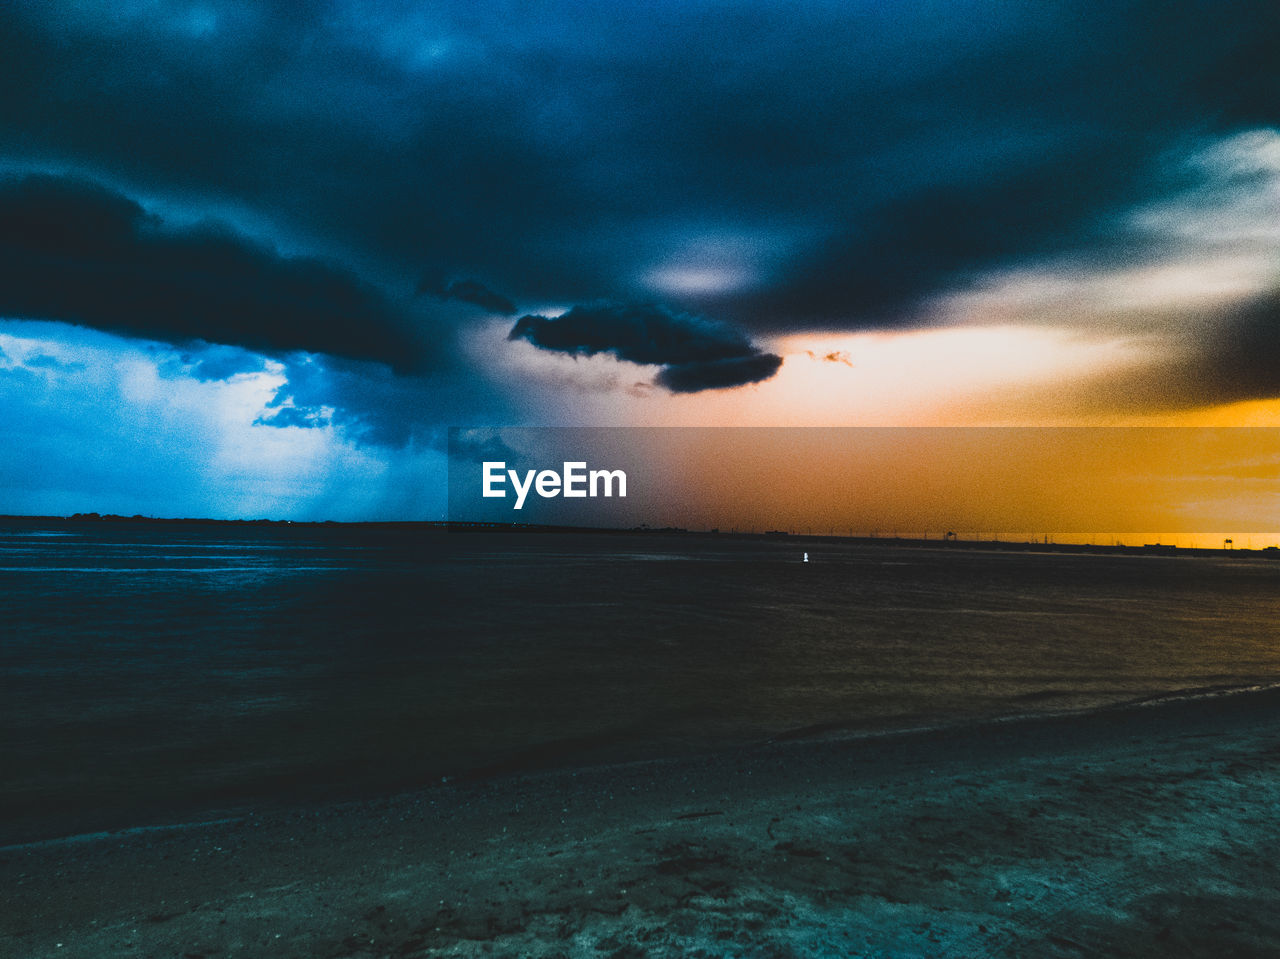 sunset, cloud - sky, nature, sky, beauty in nature, scenics, tranquil scene, sea, dramatic sky, tranquility, water, outdoors, no people, beach, storm cloud, horizon over water, travel destinations, landscape, day